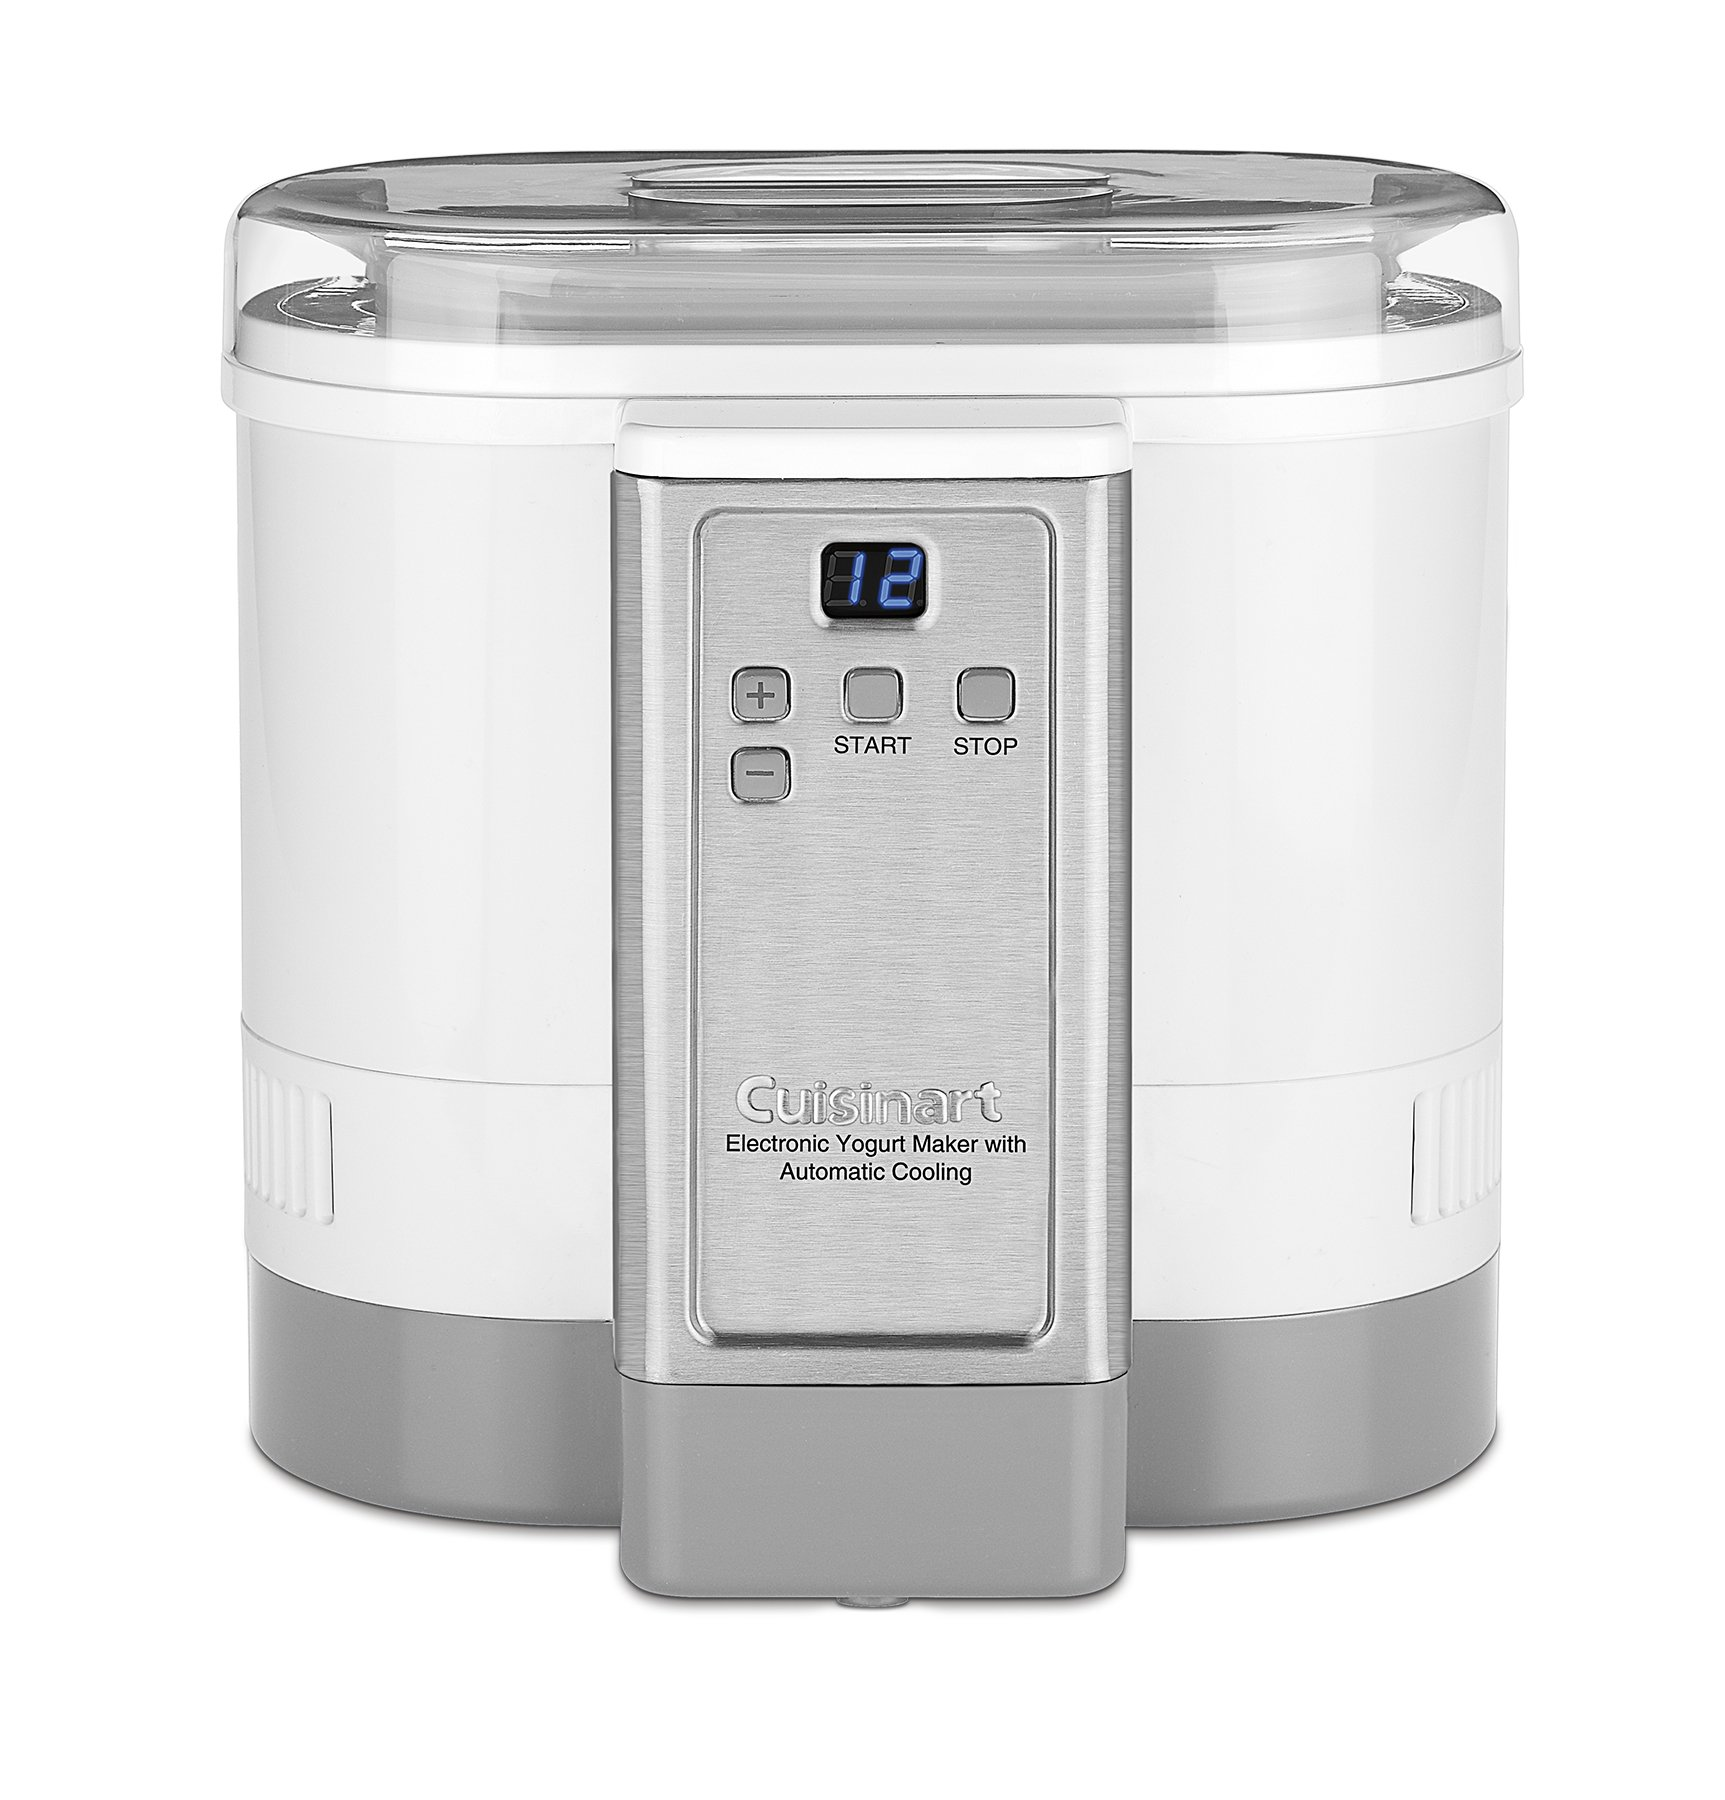 Cuisinart CYM-100 Electronic Yogurt Maker with Automatic Cooling,3.12lb Jar capacity,(1.5L) by Cuisinart